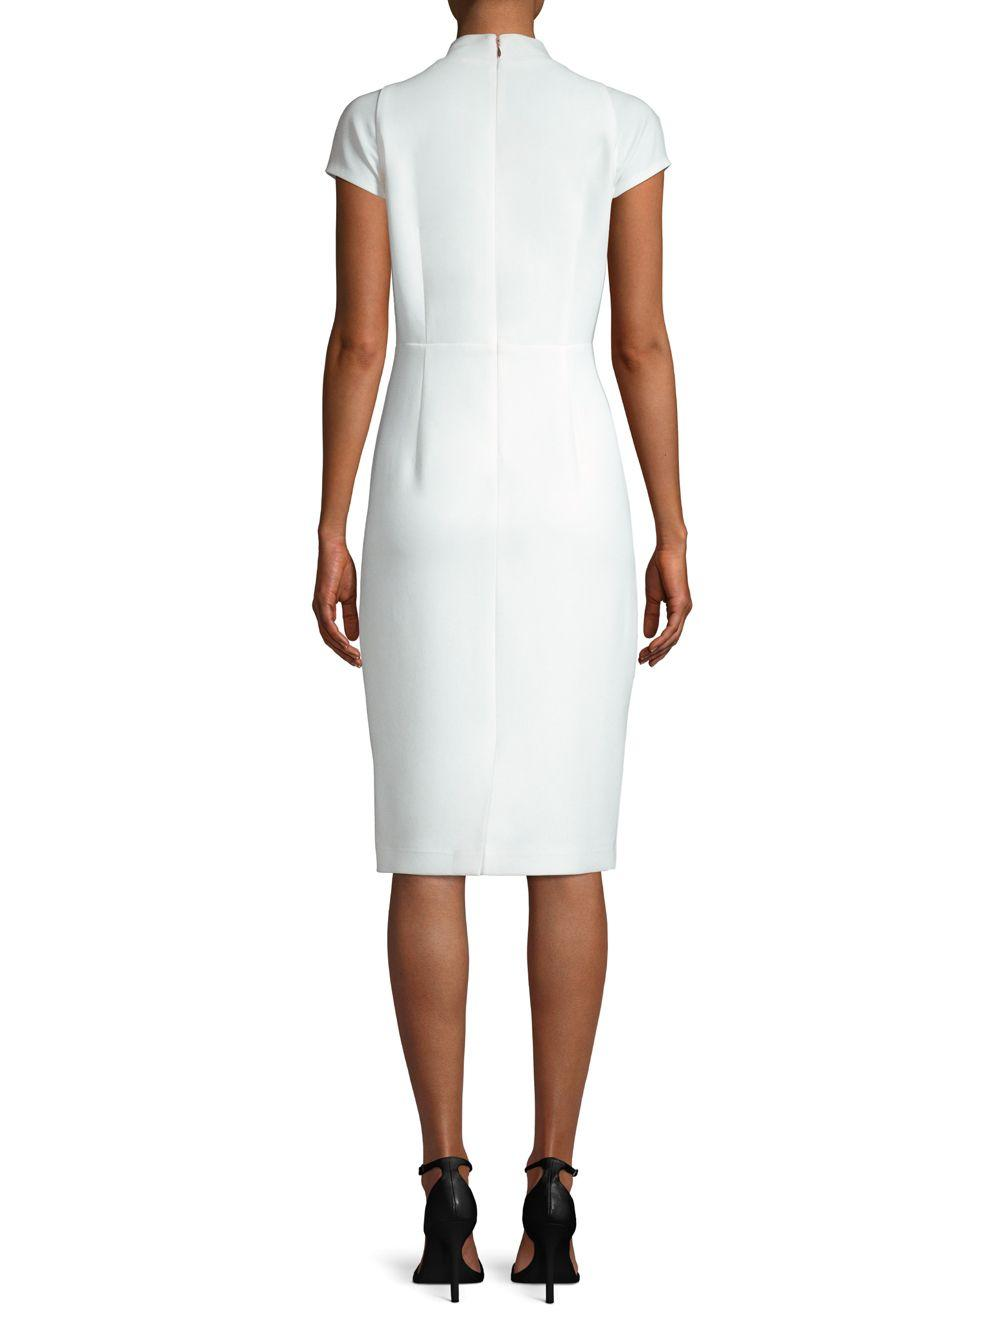 078e5007 Elie Tahari Gerarda Crepe Sheath Dress in White - Save 68% - Lyst